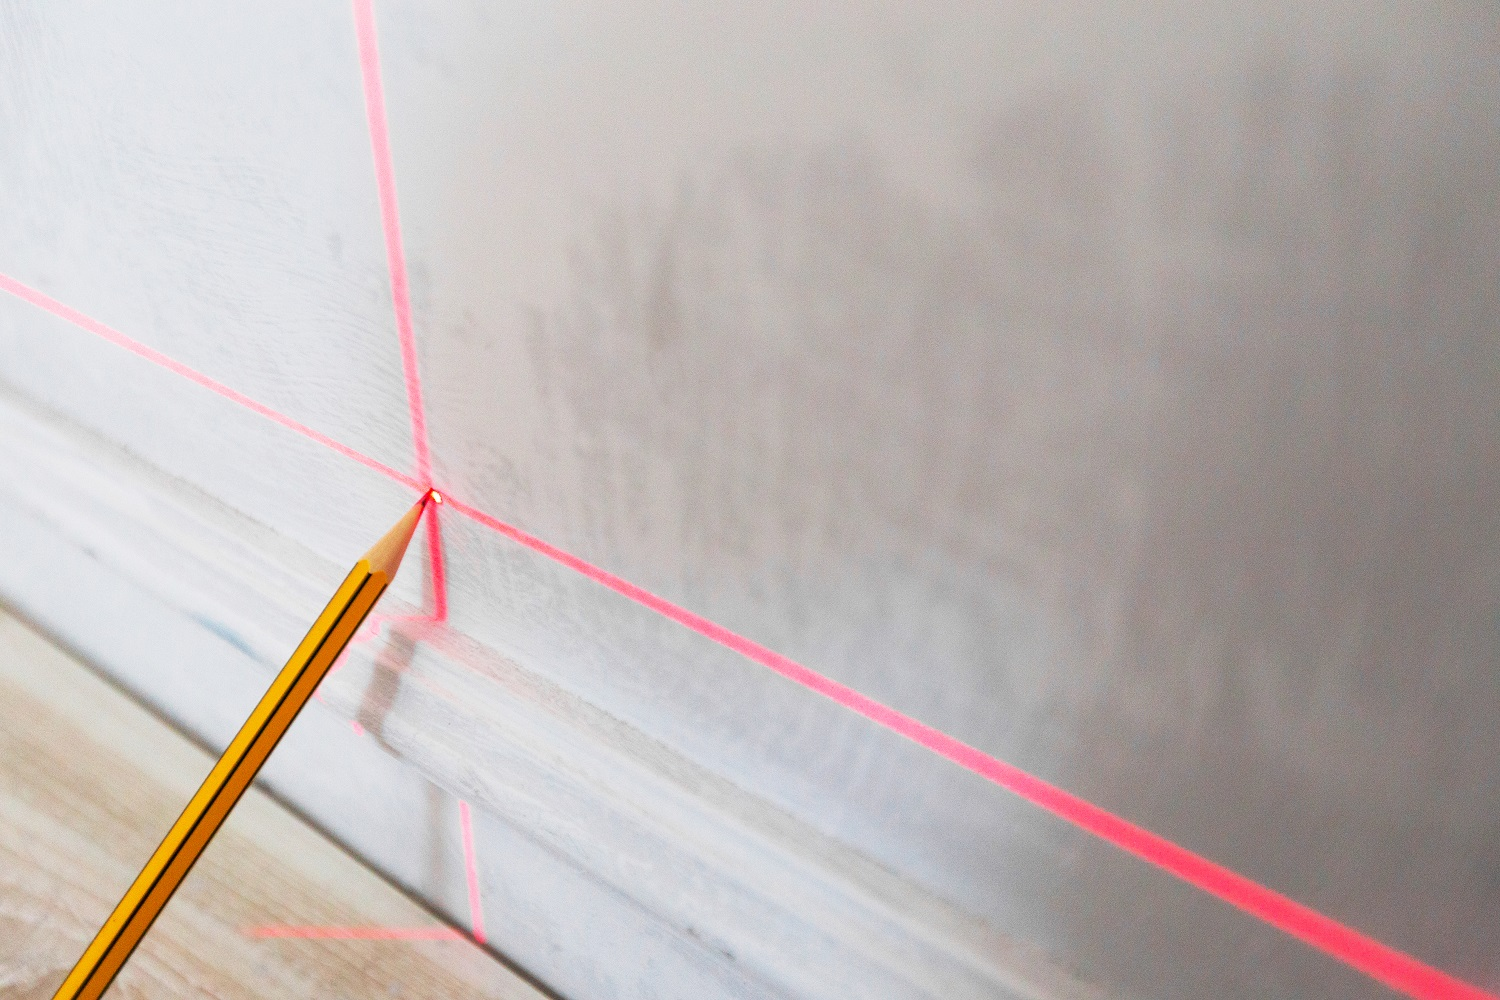 Best laser level for home use 4